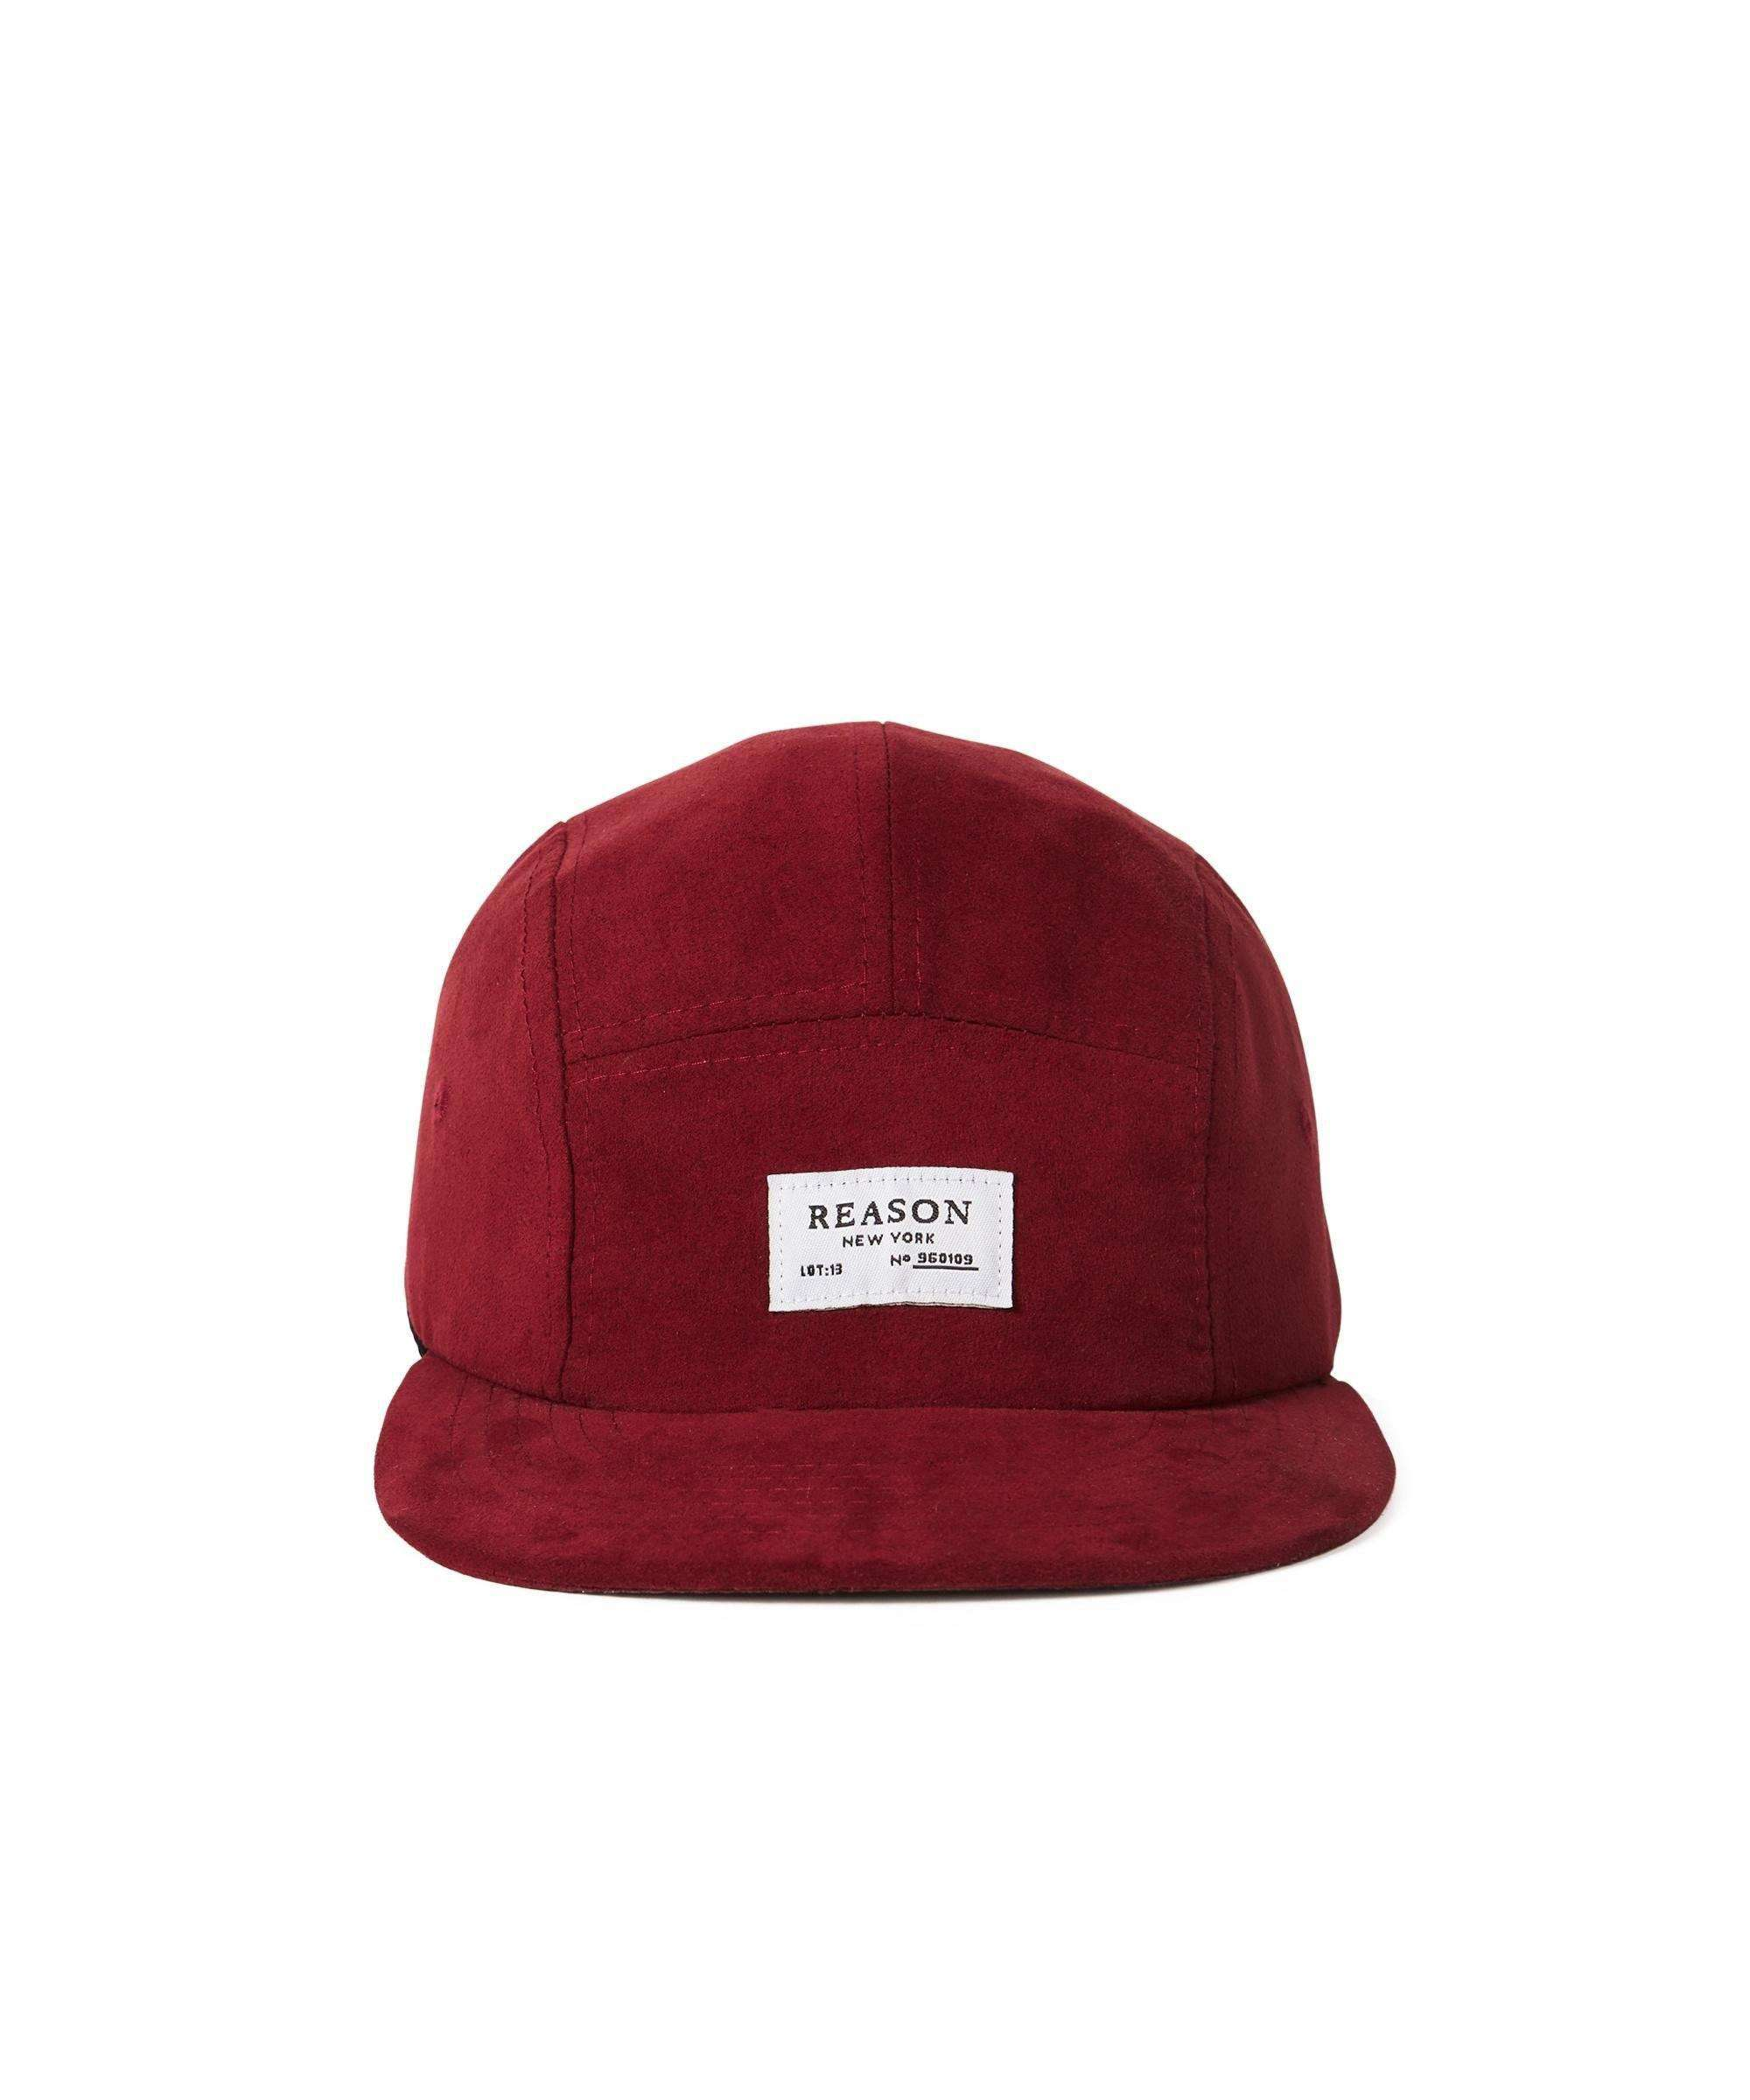 SUEDE CAP - BURGUNDY Reason Clothing